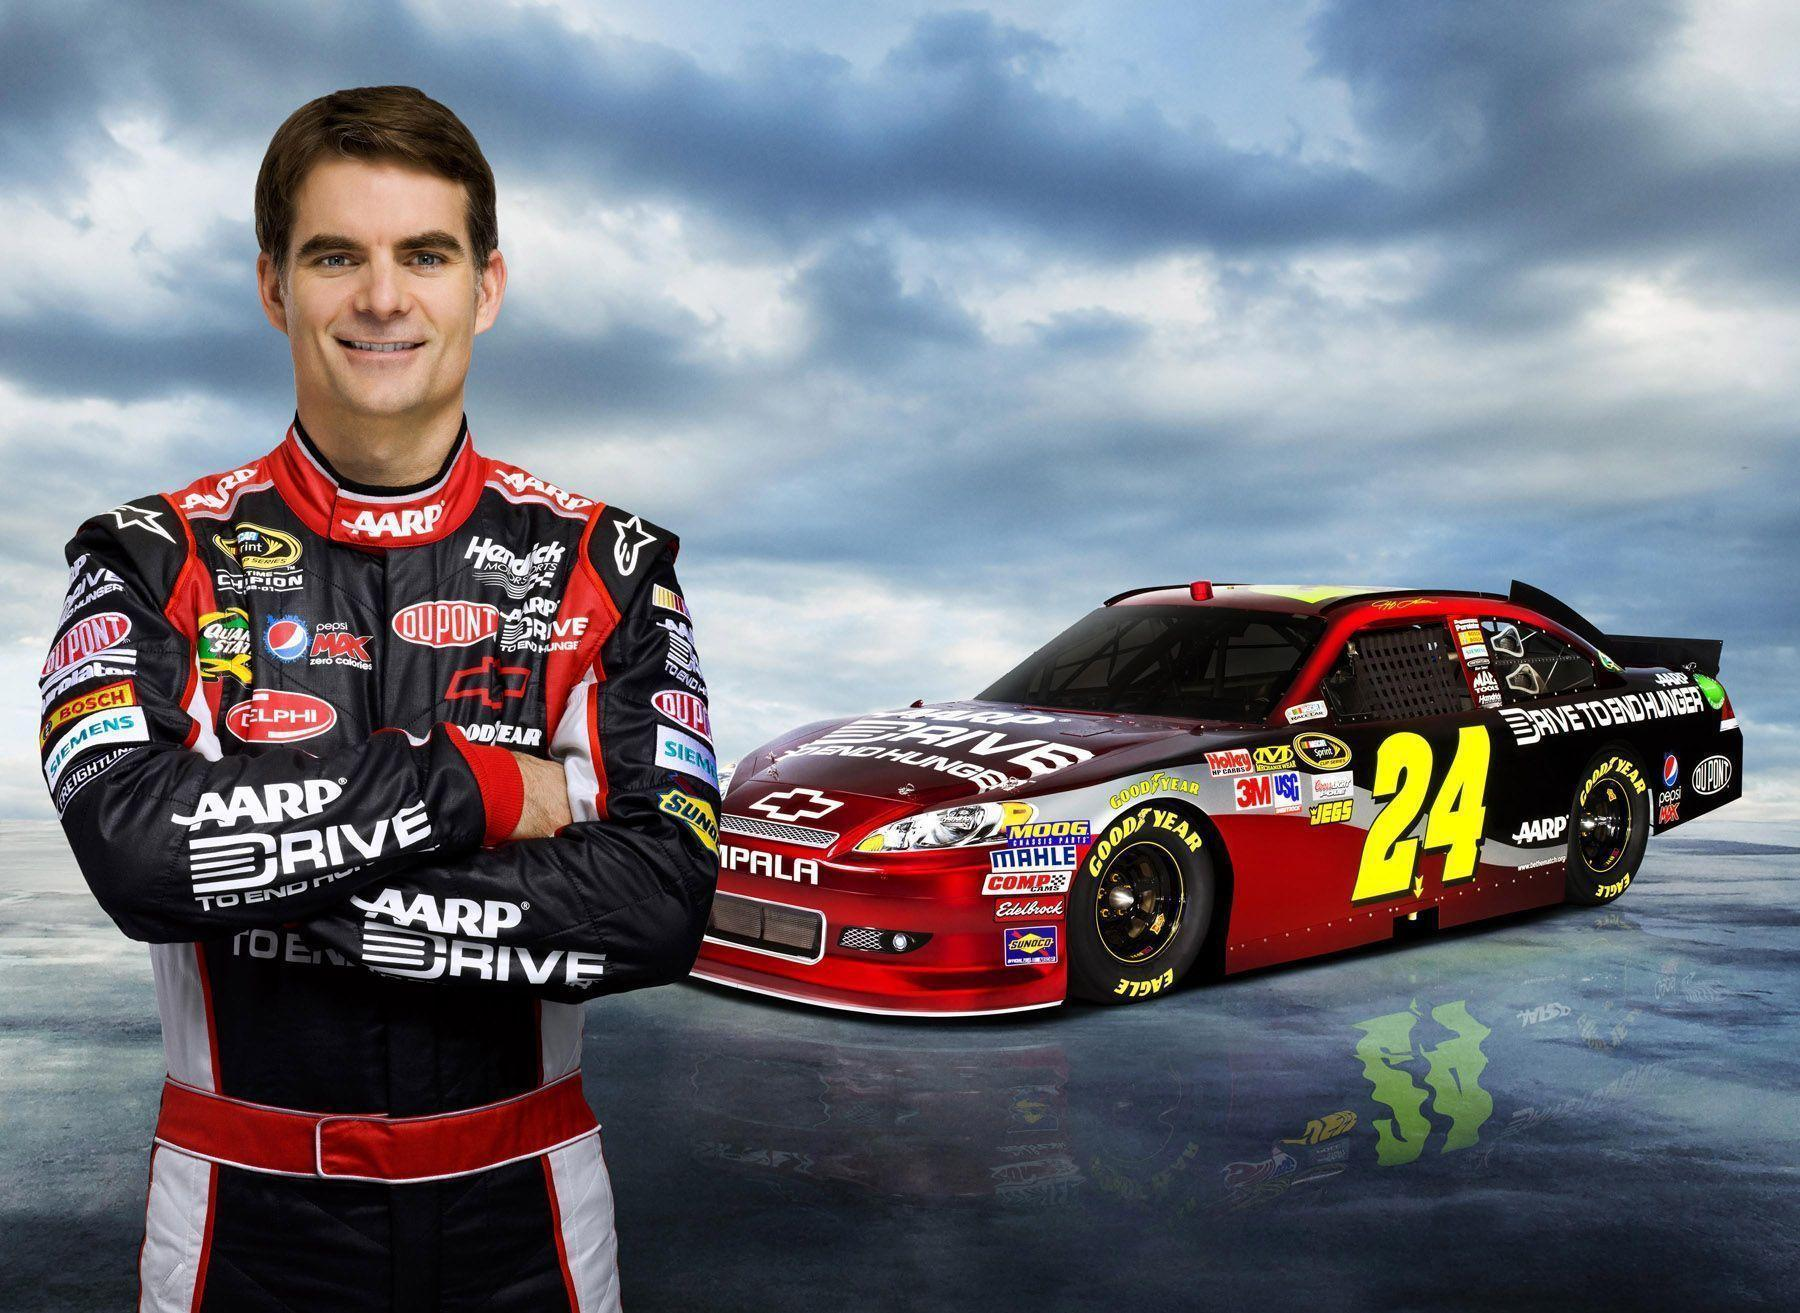 jeff gordon desktop wallpaper - photo #22